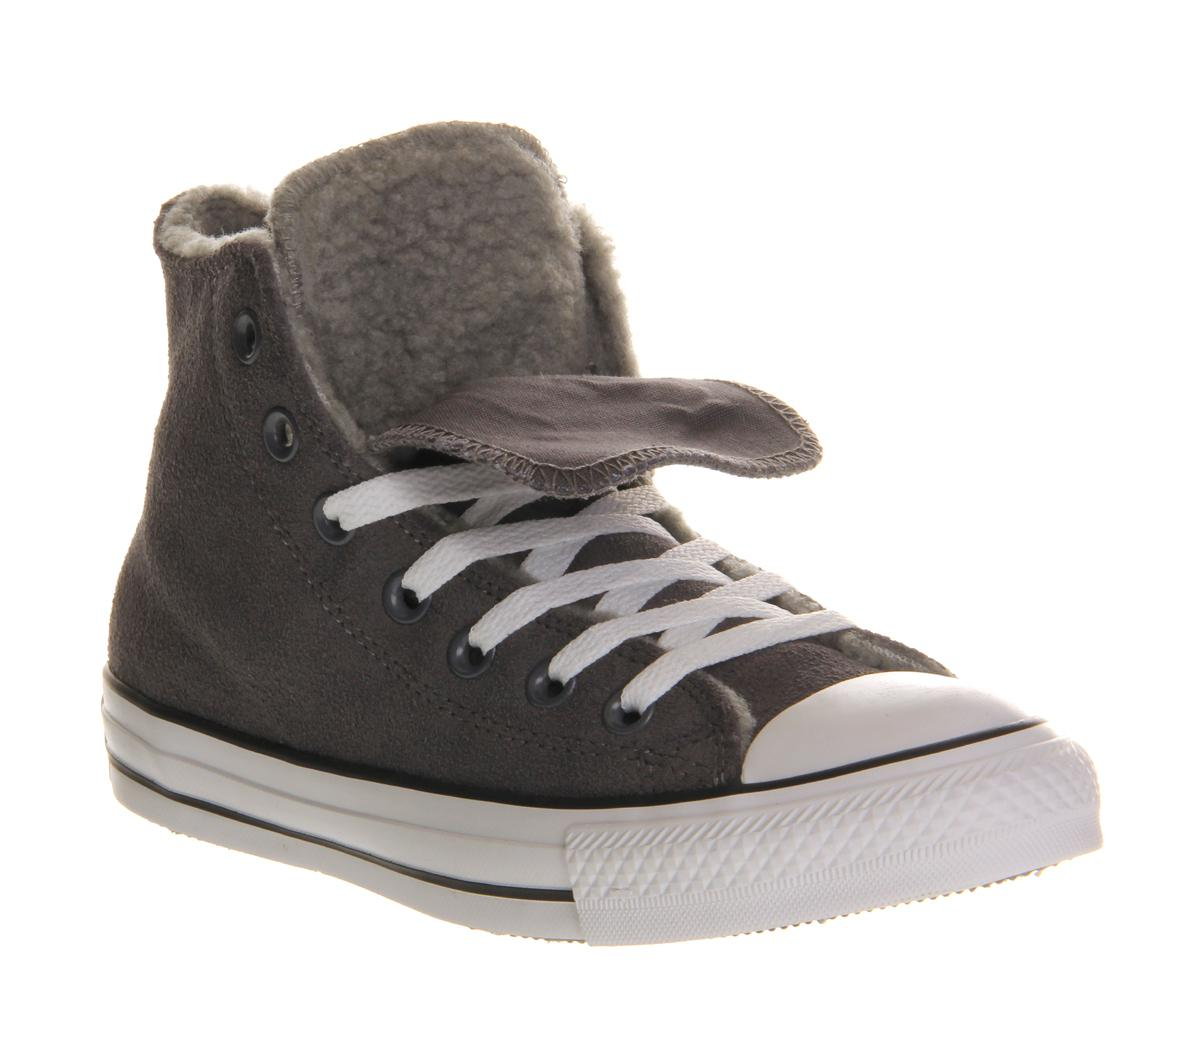 ae2ed00eb2e4 Lyst - Converse All Star Hi Double Tongue in Gray for Men